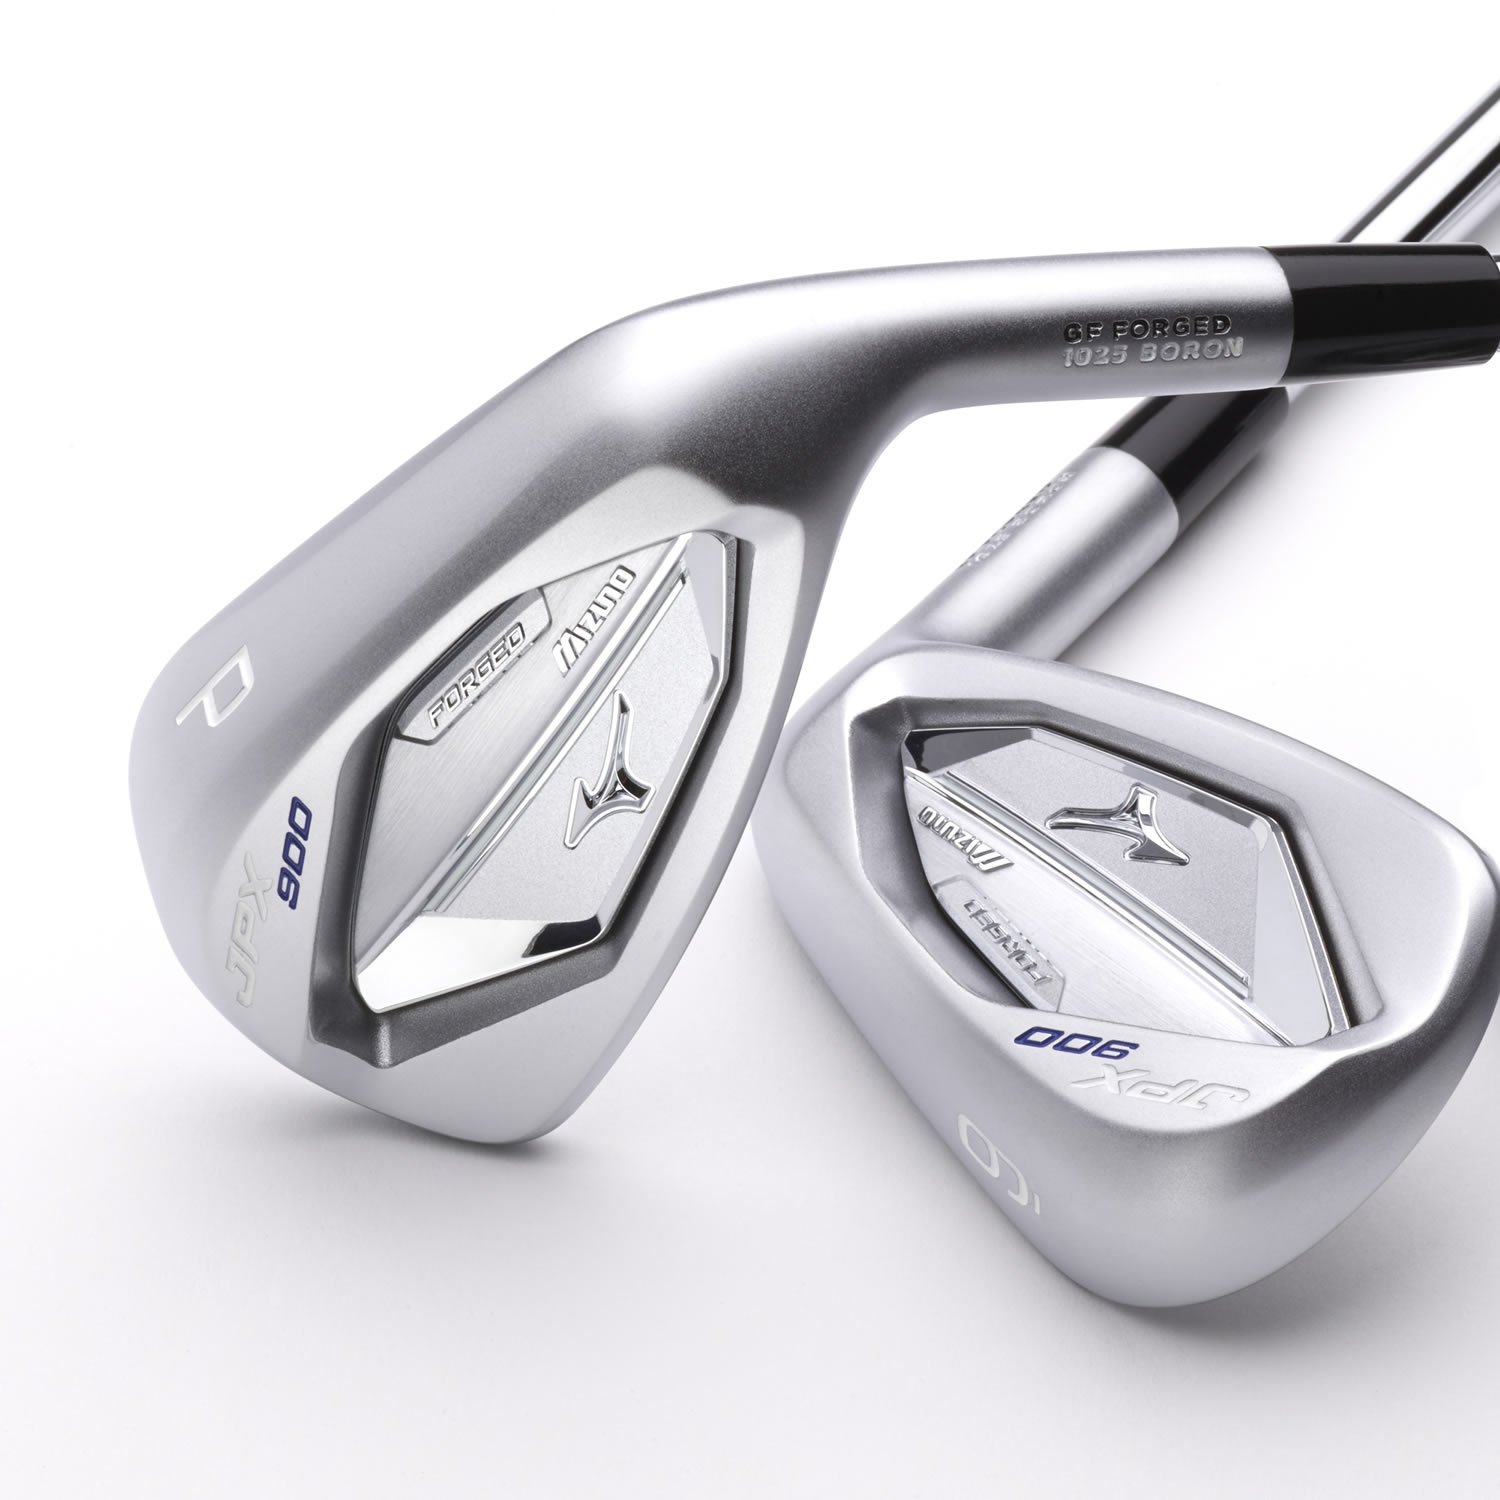 Mizuno Jpx 900 Forged Irons Kbs S5nfzK3N